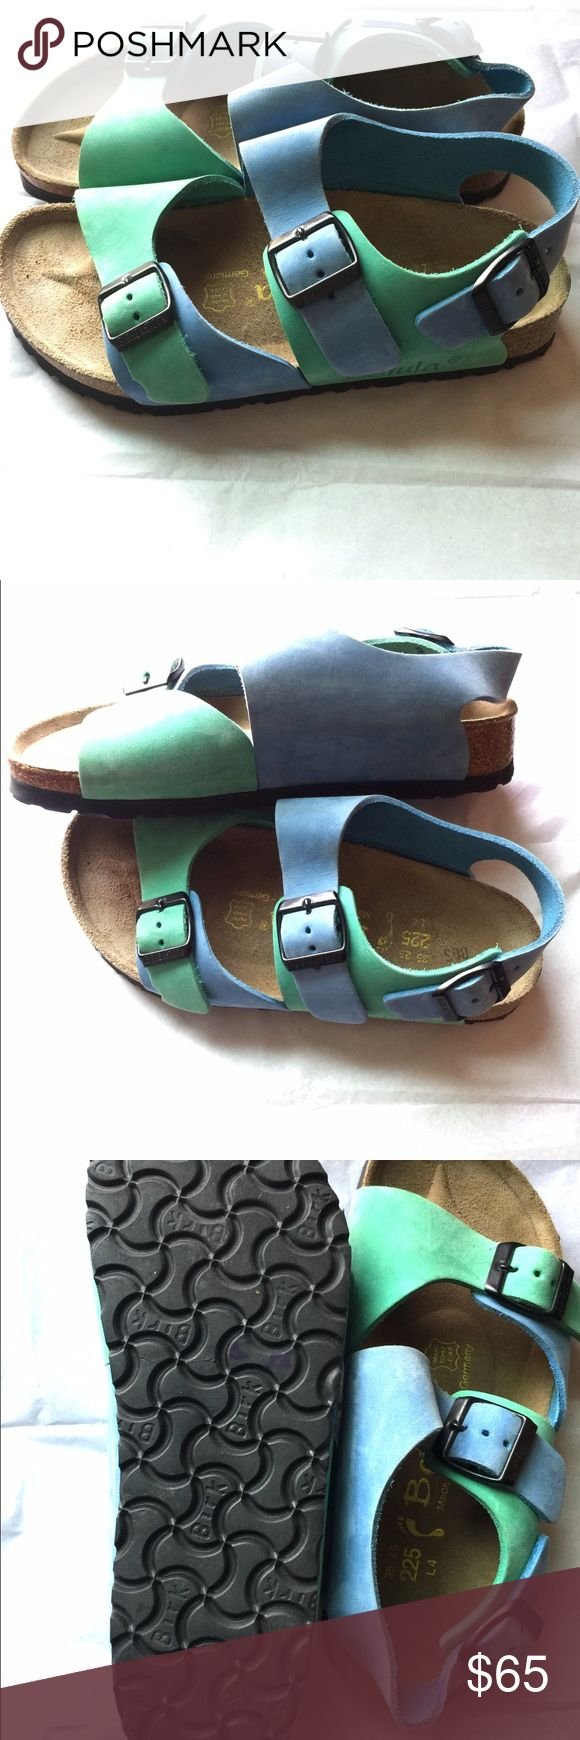 Birkenstock Betula sandals size 4 35 Super cute Betula by Birkenstock sandals size 4 35 worn only once!! Colors are blue and green! Super cute! Spring will be here before you know it! Birkenstock Shoes Sandals